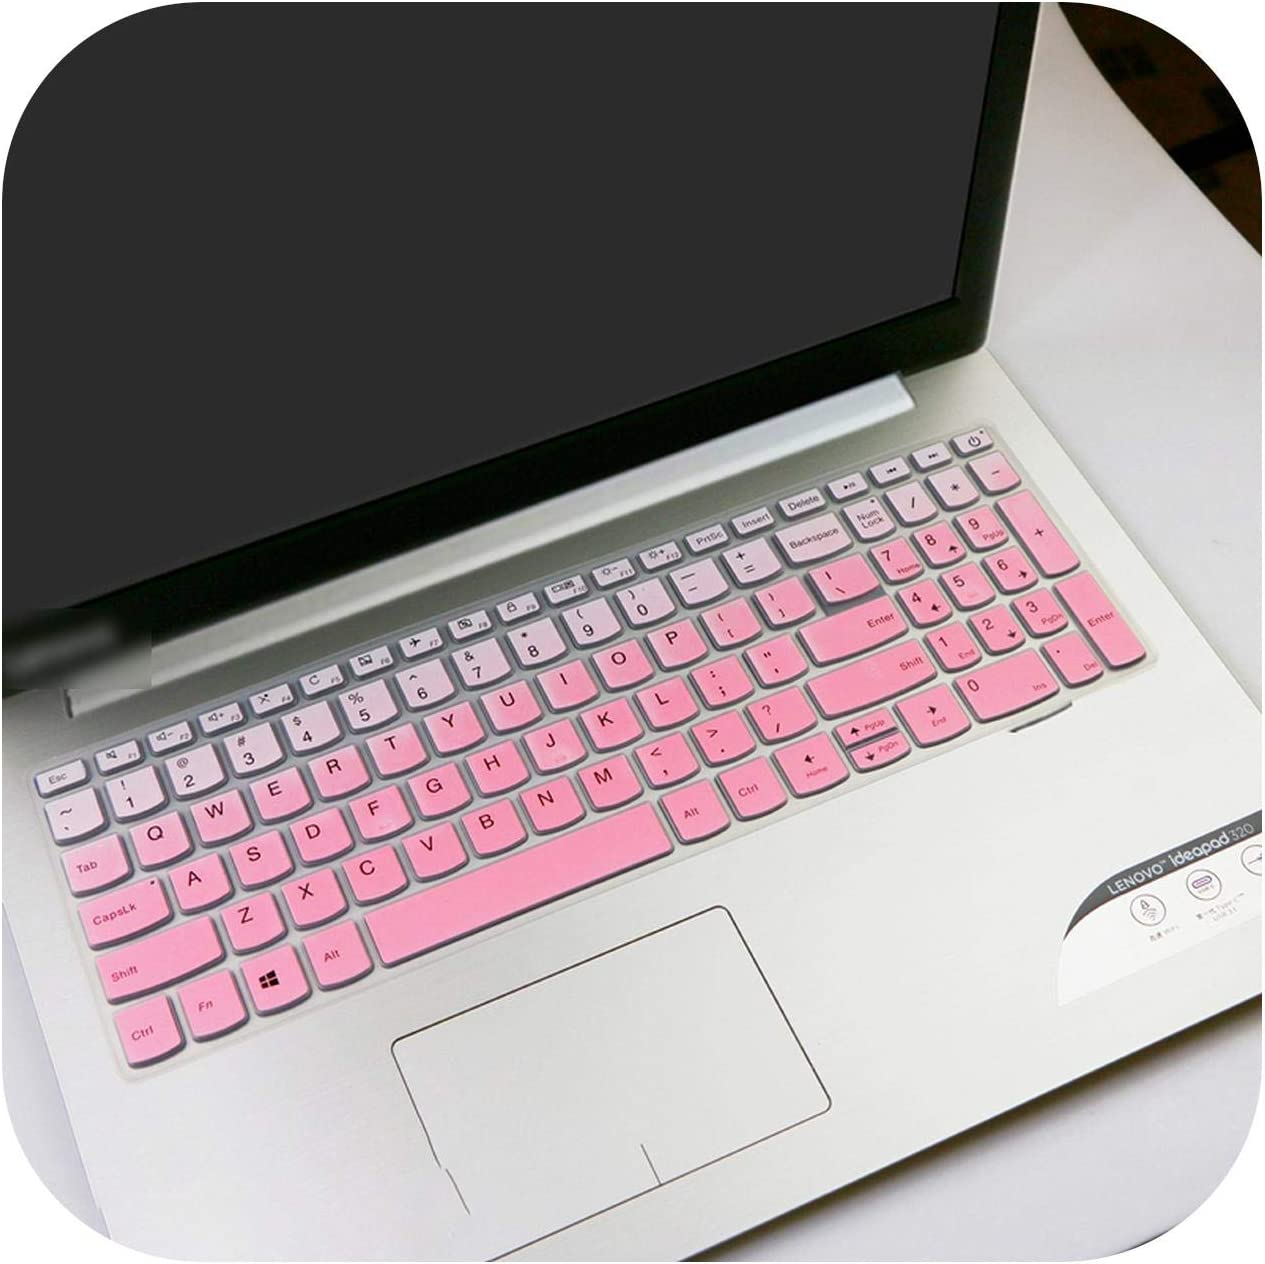 Laptop Notebook Keyboard Cover Skin Protector for Lenovo Ideapad S145 15 S145 15Ast S145 15Iwl 14Ast 15Iwl 330 320 15.6 Inch-White